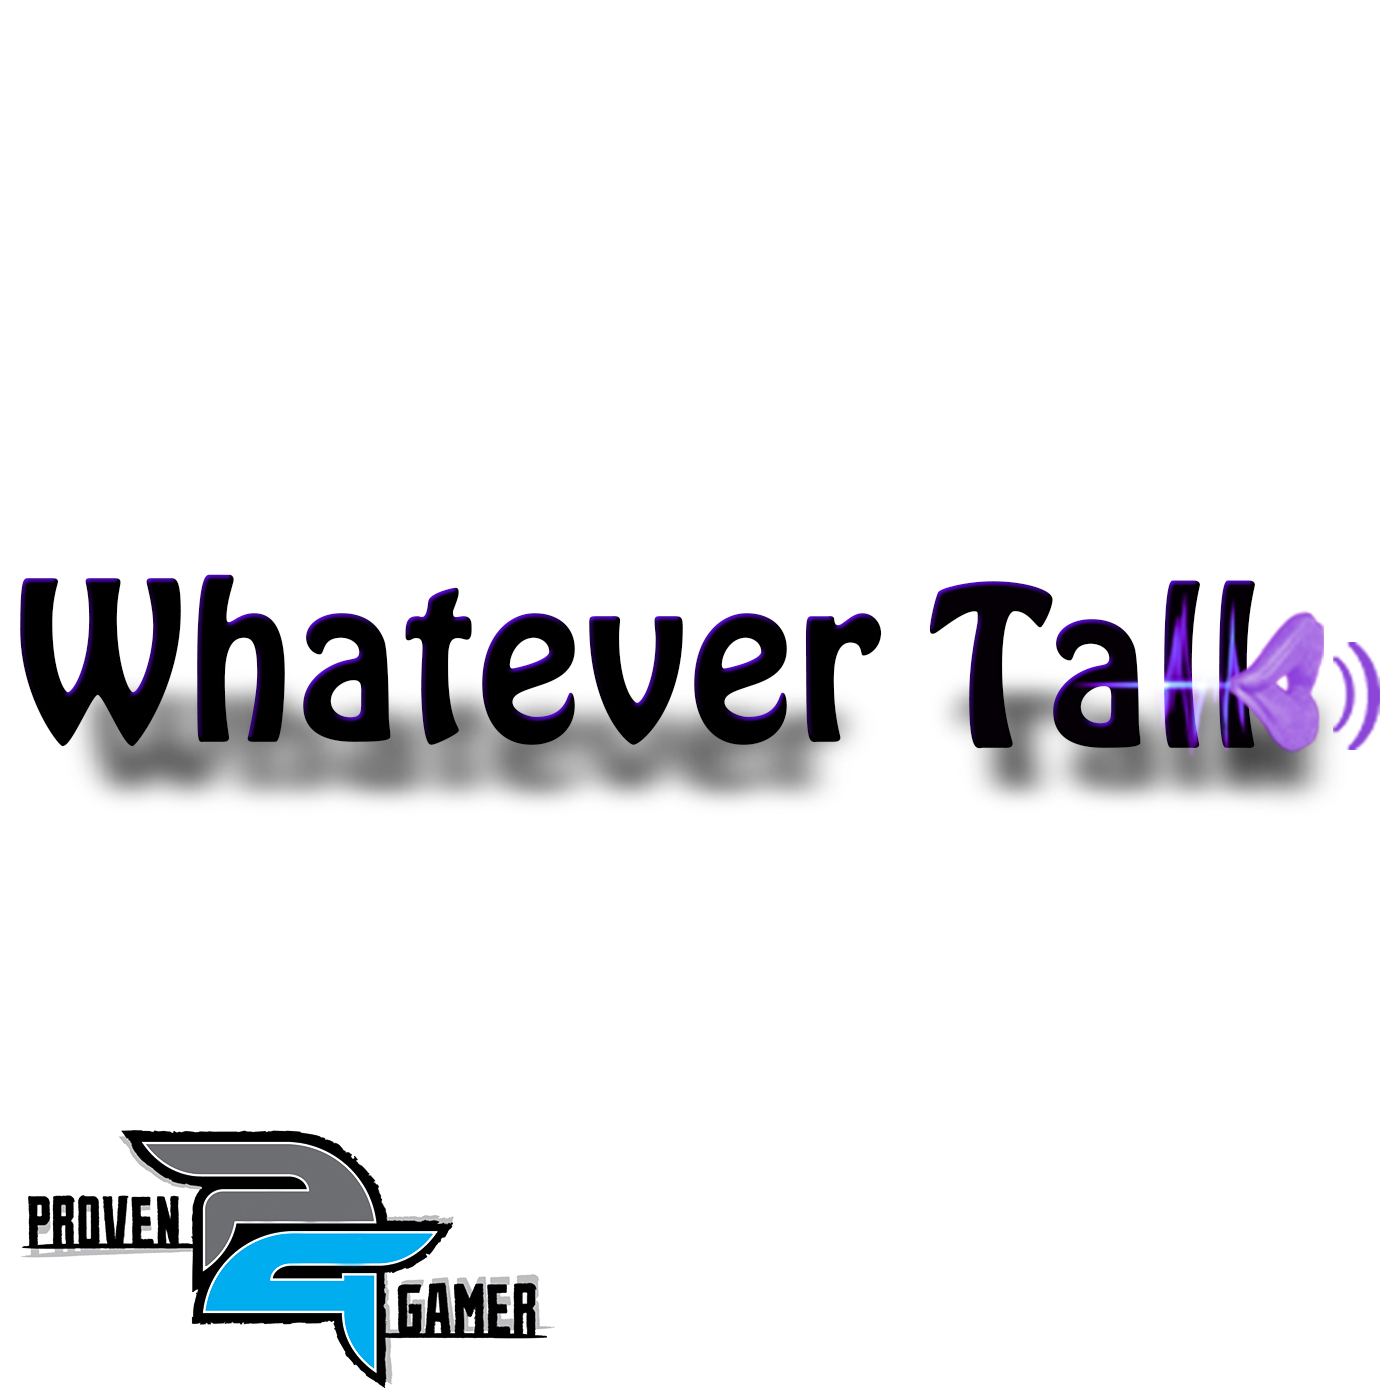 Proven Gamer » Whatever Talk